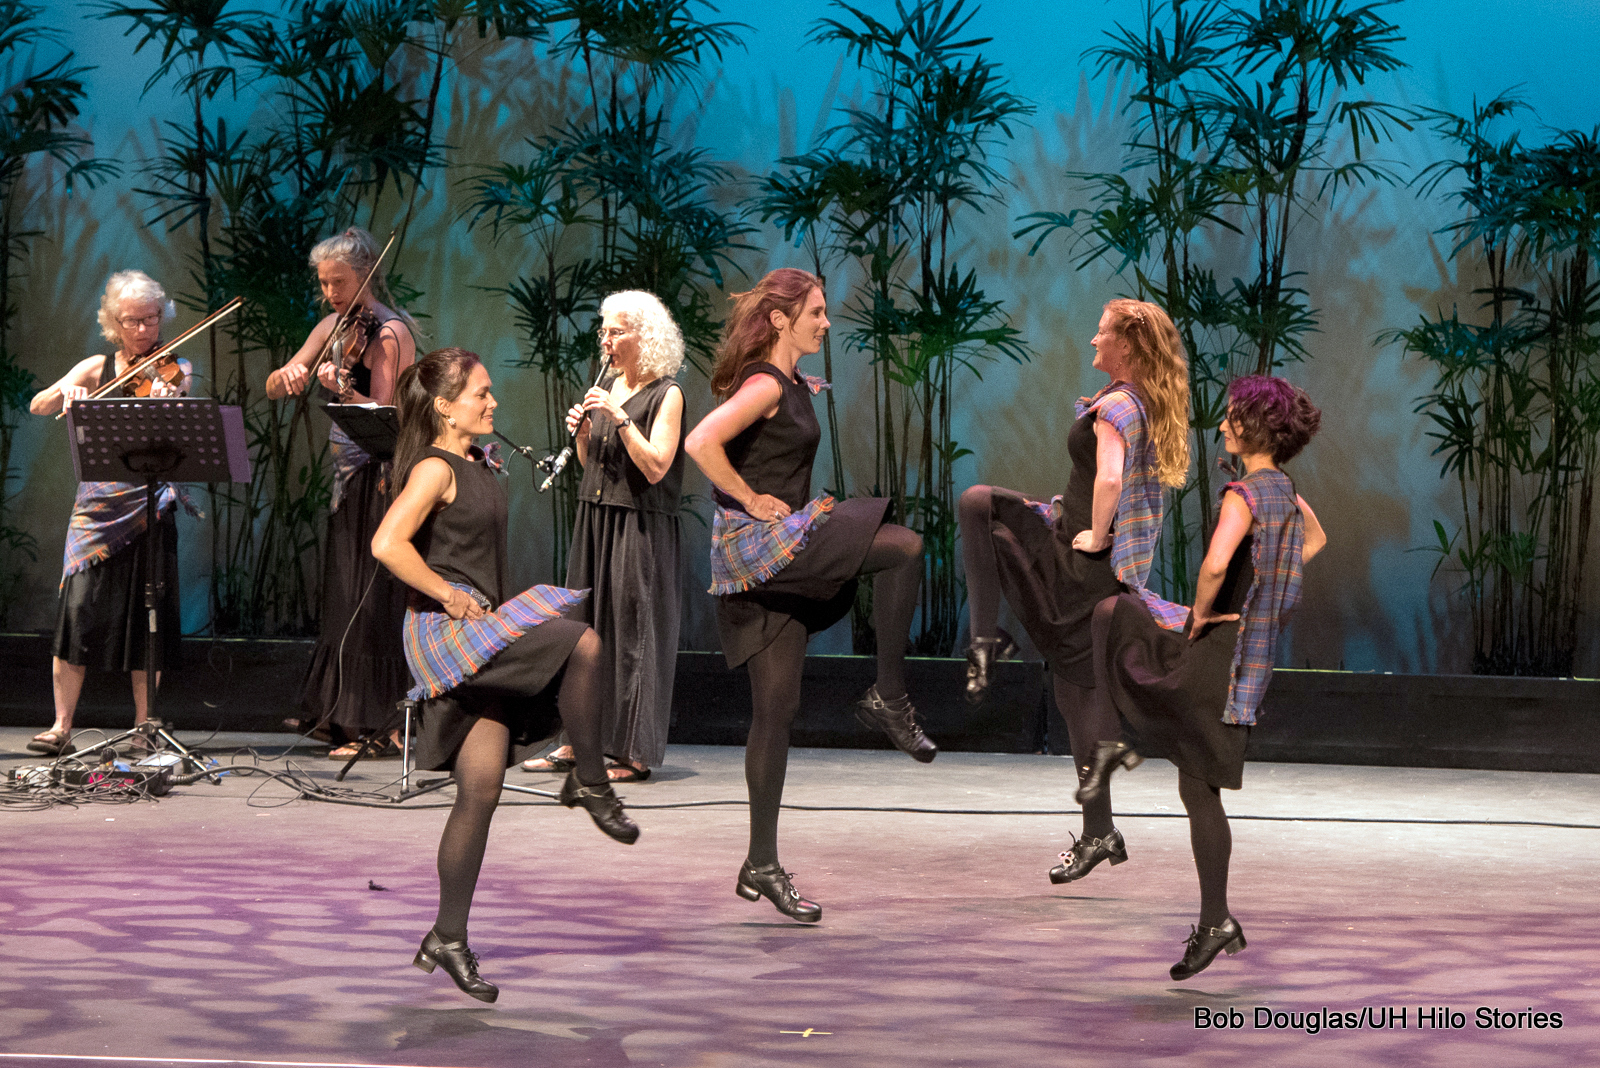 Four women in line, hands on hips, kicking up right feet swung left to other side. In background is quartet with keyboard and strings.